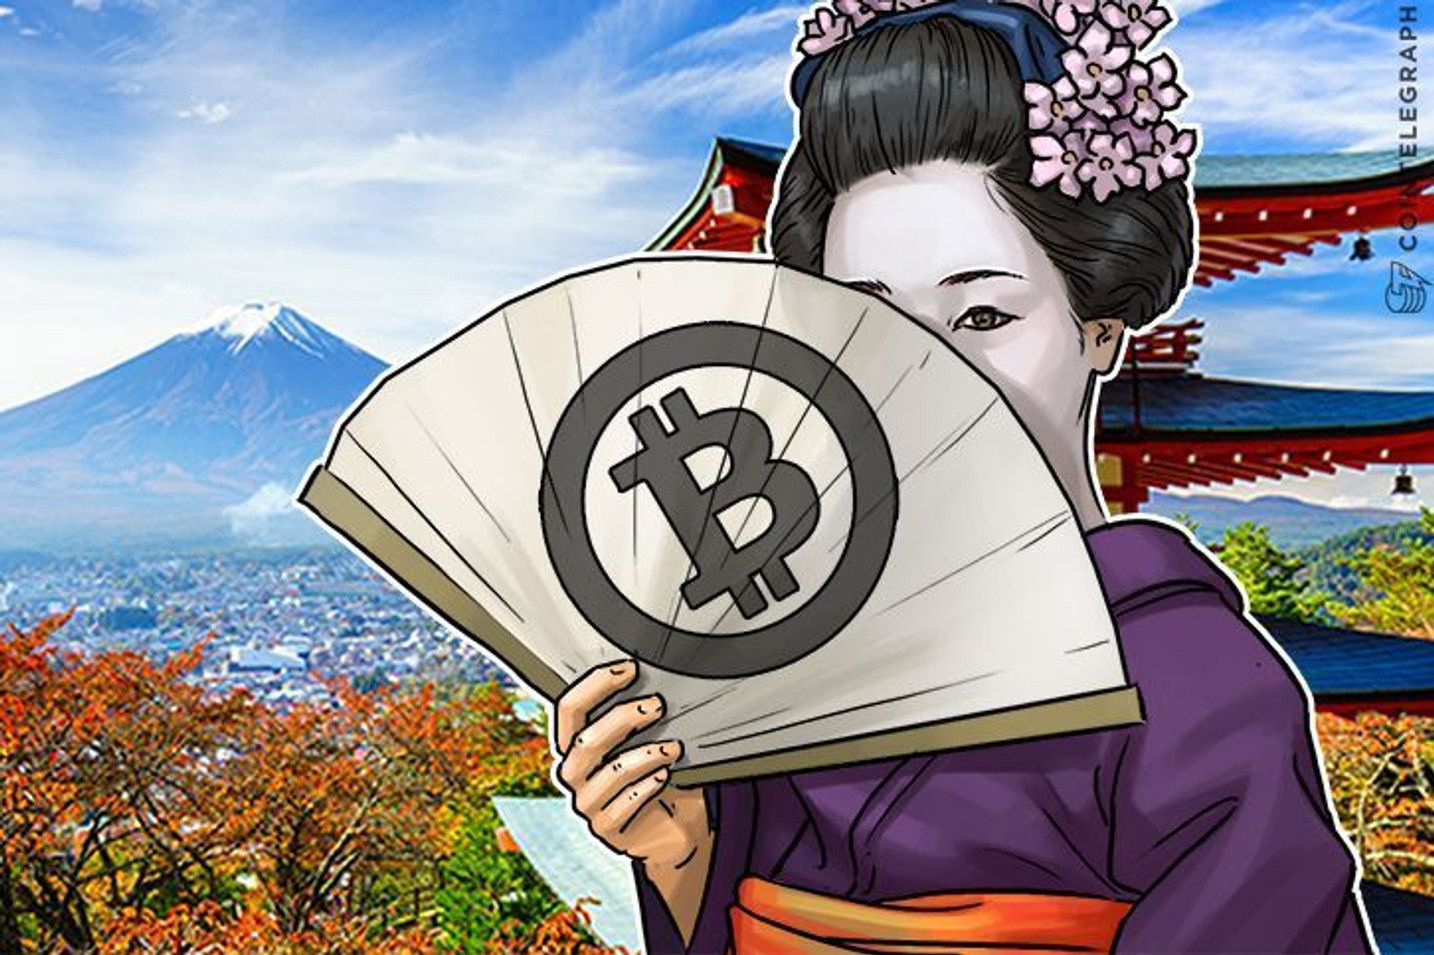 Bitcoin 'Adds 0.3%' To Japan's GDP, Claim Nomura Analysts